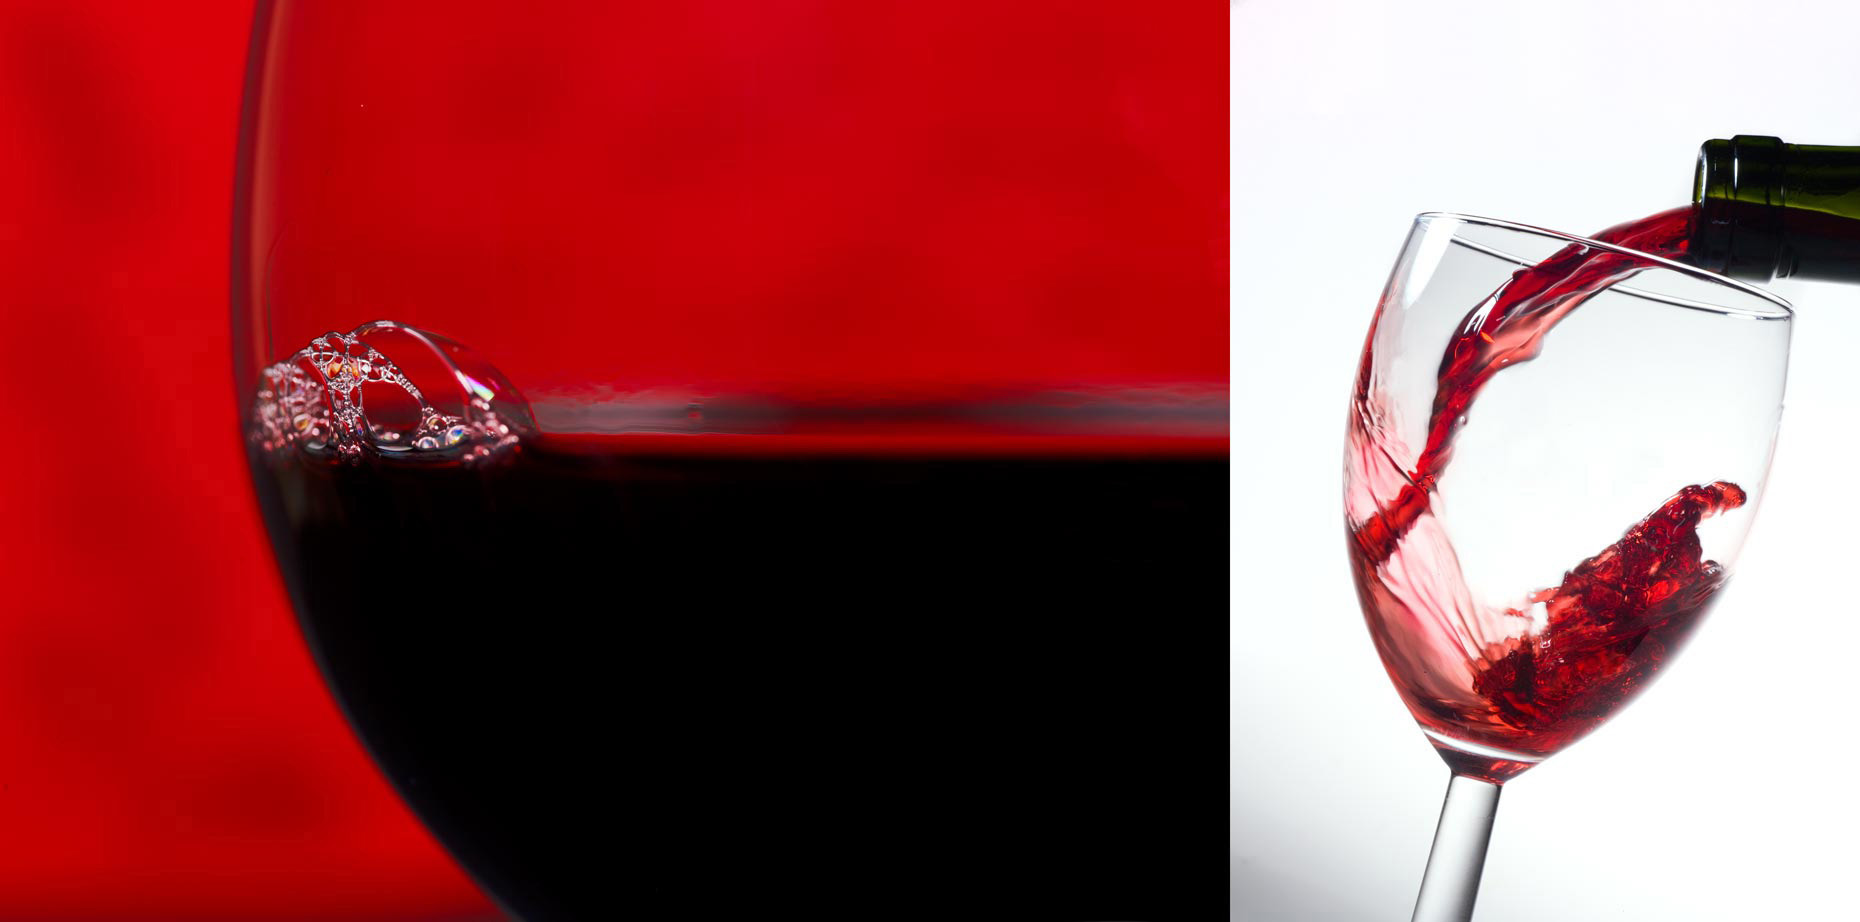 Beverage Photography | Red Wine Bubble & Red Wine Pour